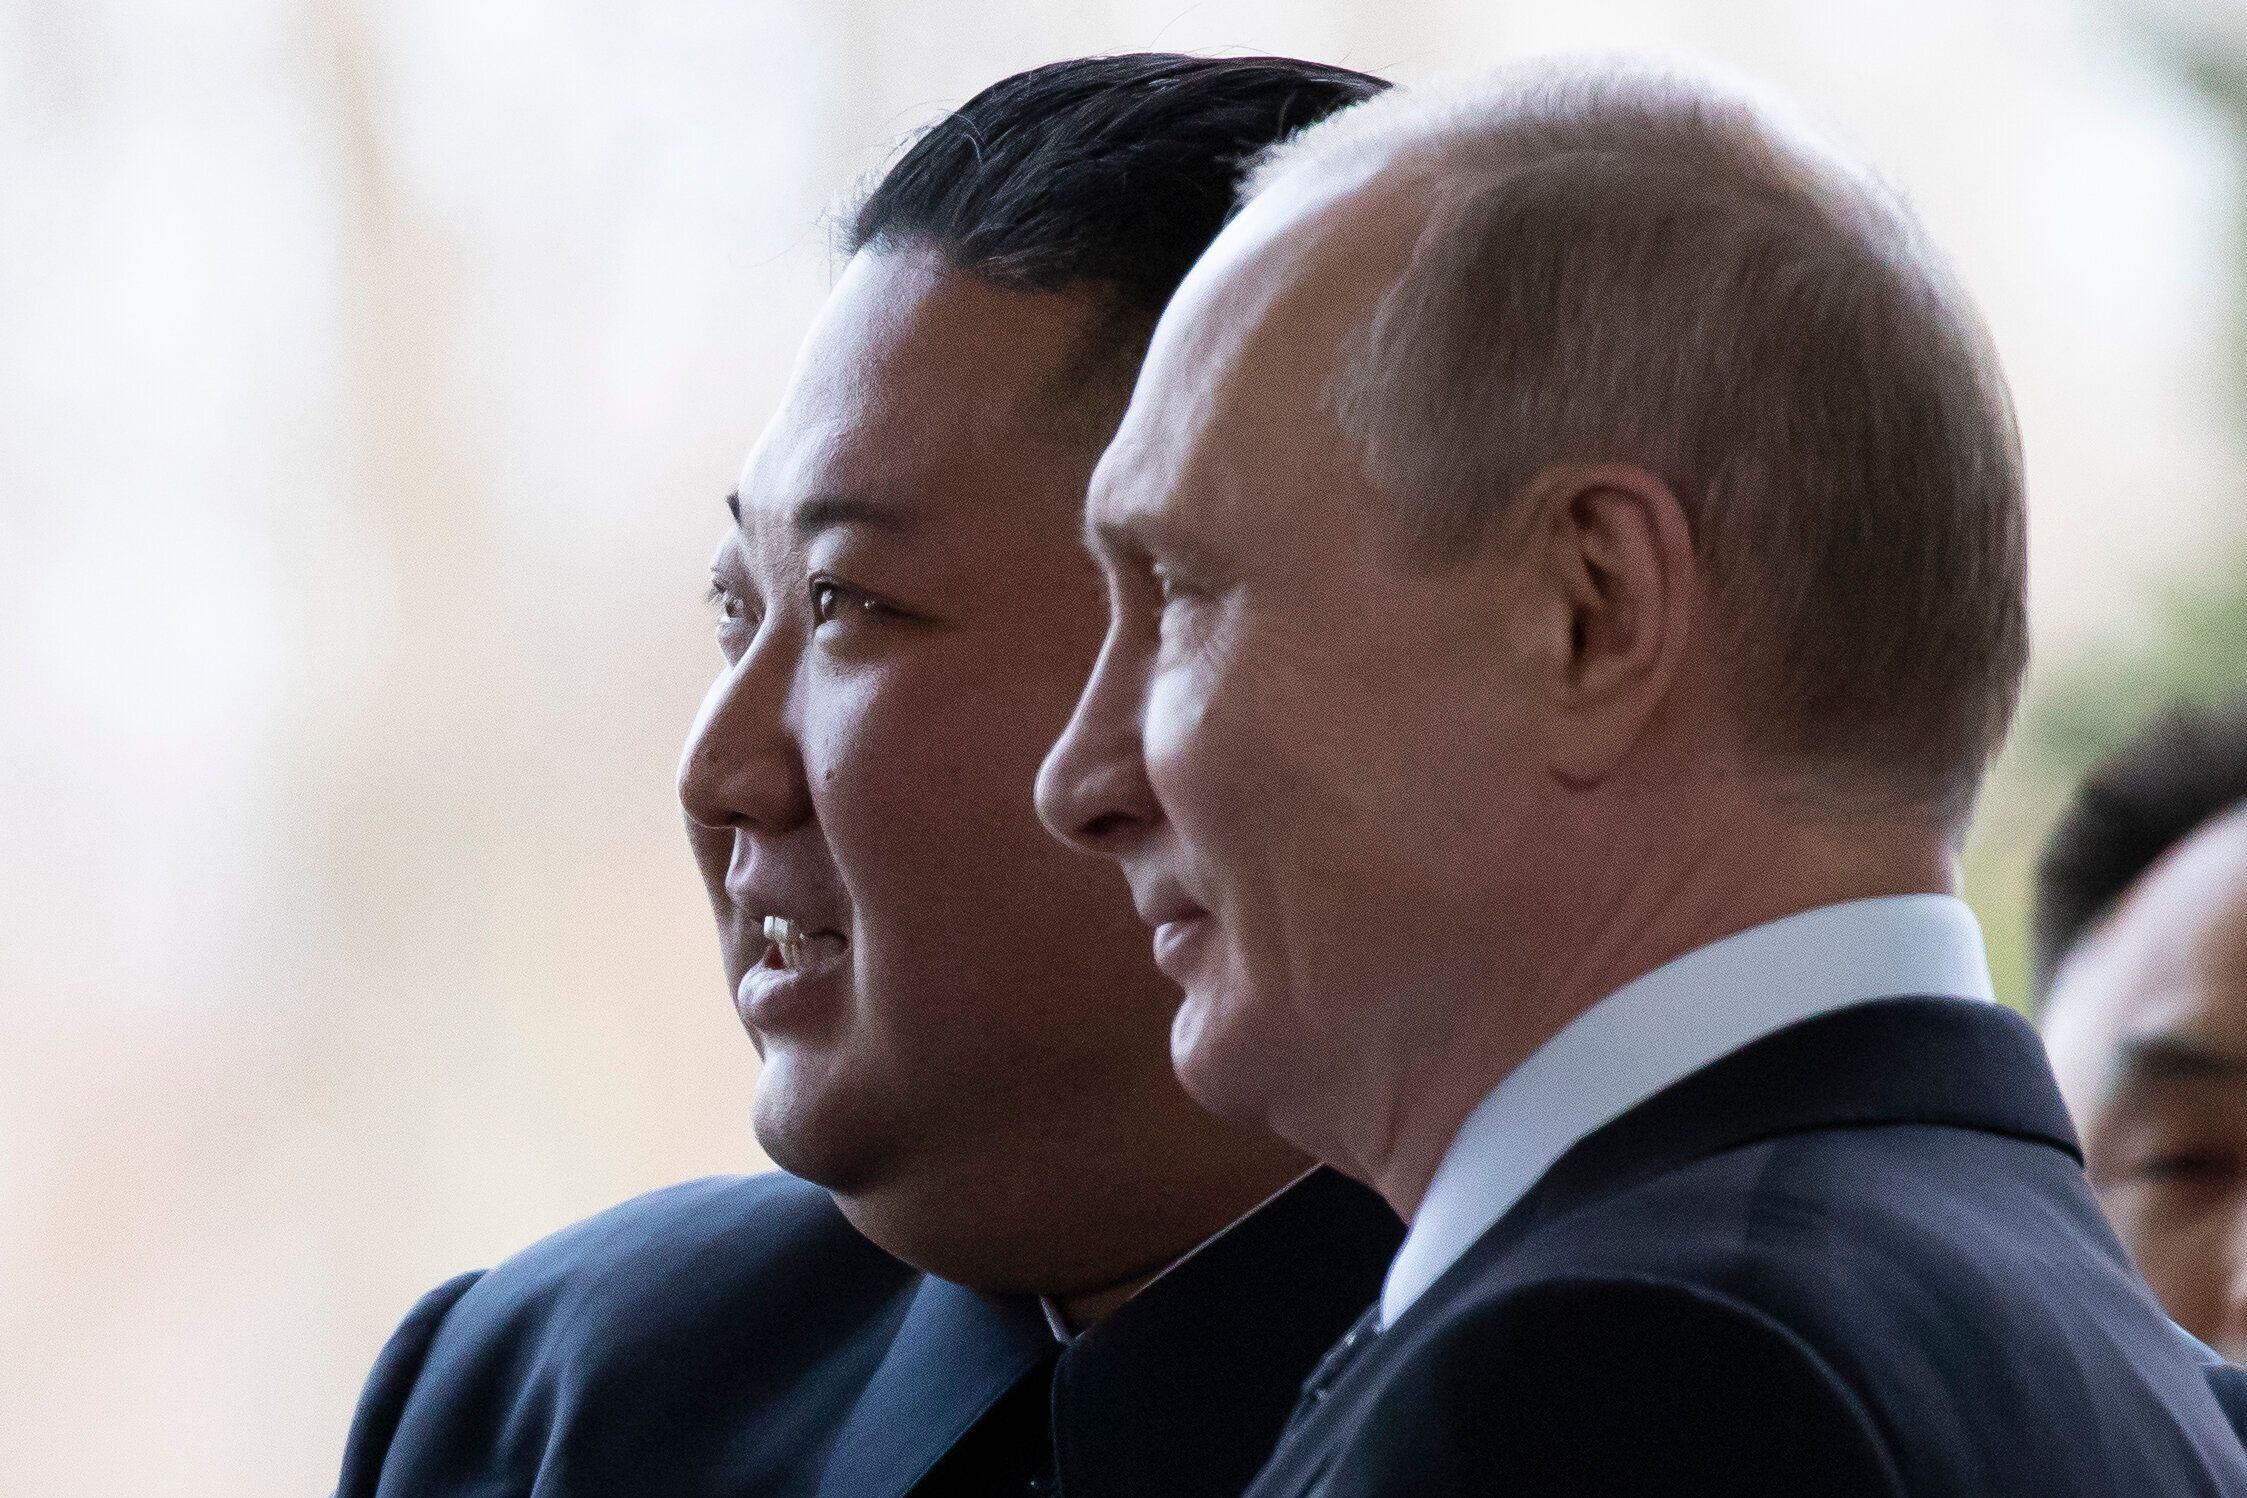 Russian President Vladimir Putin, right, and North Korea's leader Kim Jong Un pose for a photo prior to their talks in Vladivostok, Russia, Thursday, April 25, 2019. Putin and Kim are set to have one-on-one meeting at the Far Eastern State University on the Russky Island across a bridge from Vladivostok. The meeting will be followed by broader talks involving officials from both sides. (AP Photo/Alexander Zemlianichenko, Pool)